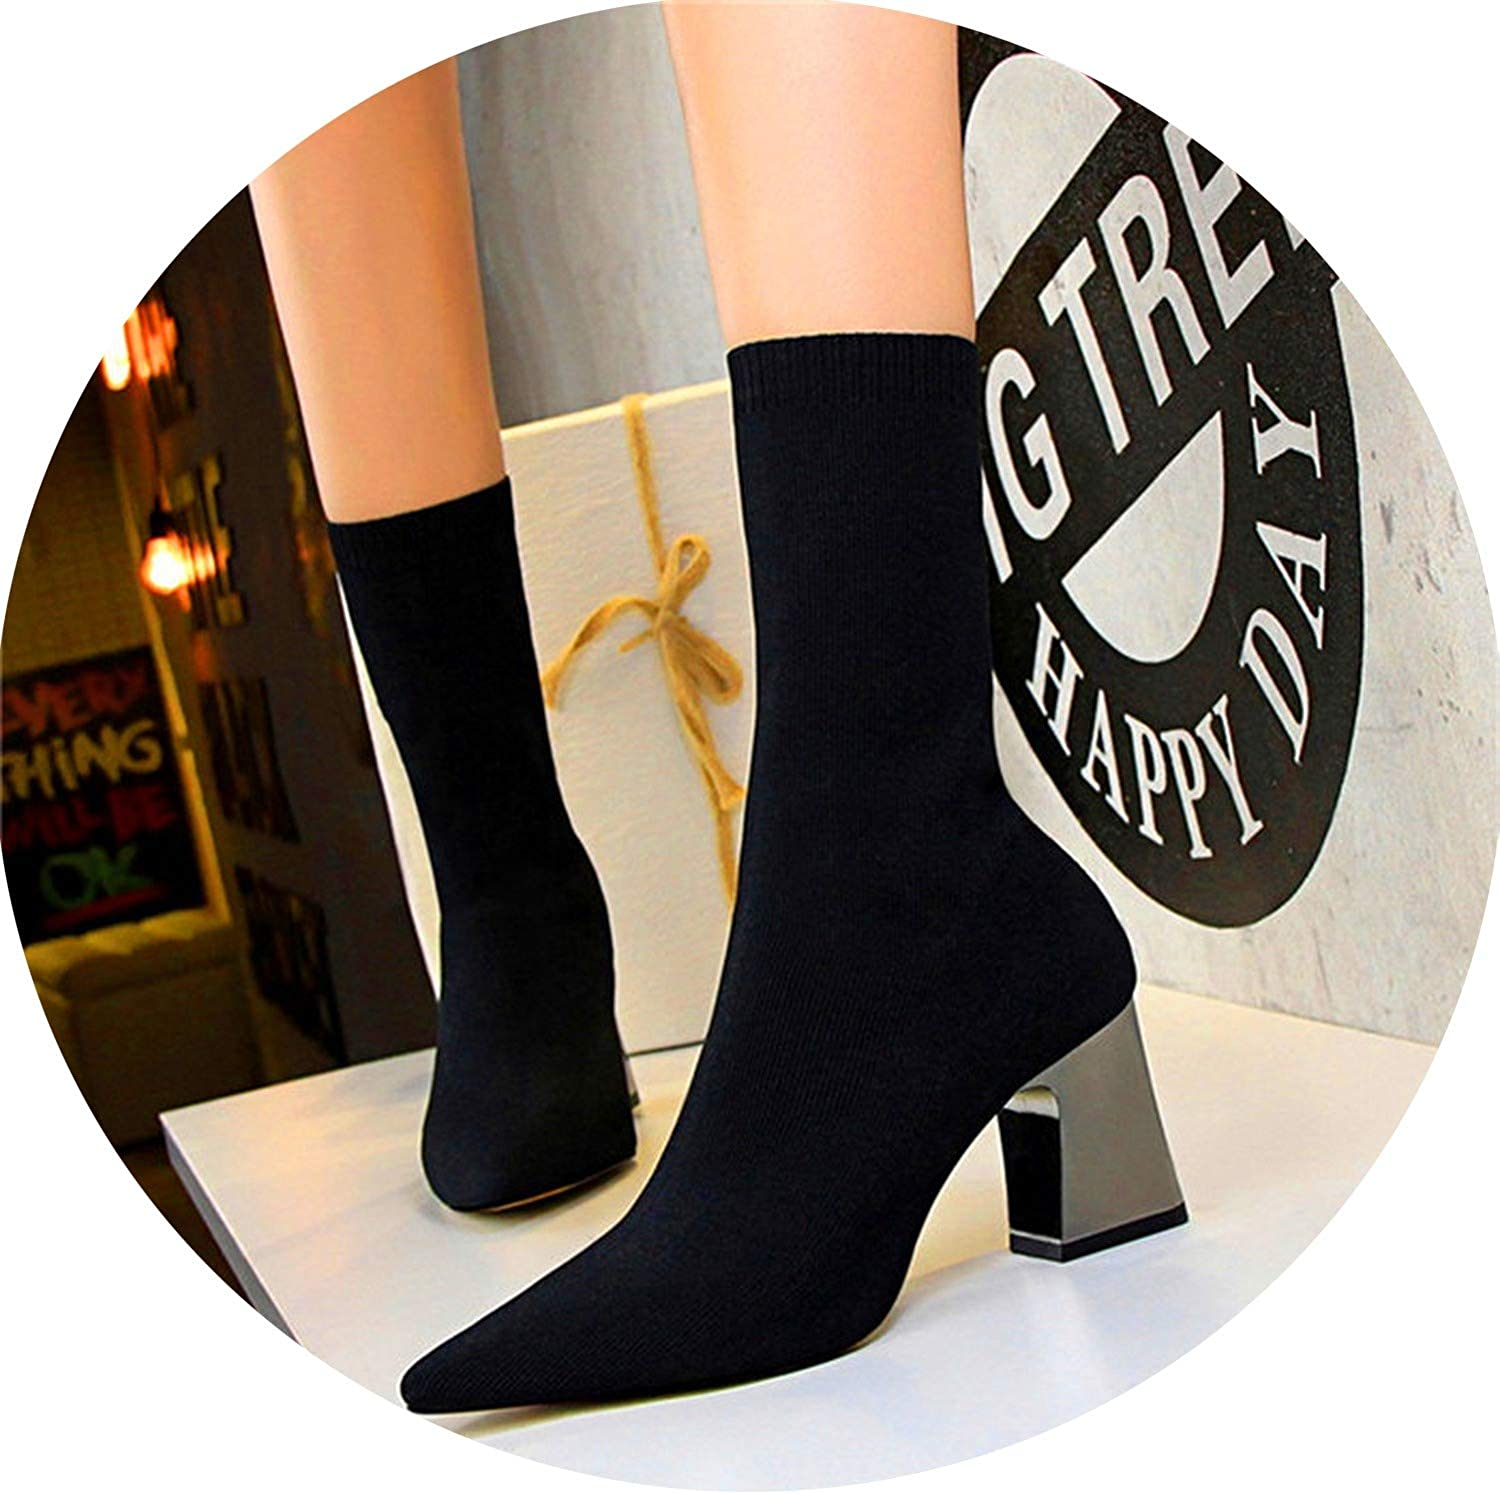 Meet- fashion Pointed Toe Women's Short Boots Solid Knitting Metal Square Heels 7cm Boots Women's High Heels